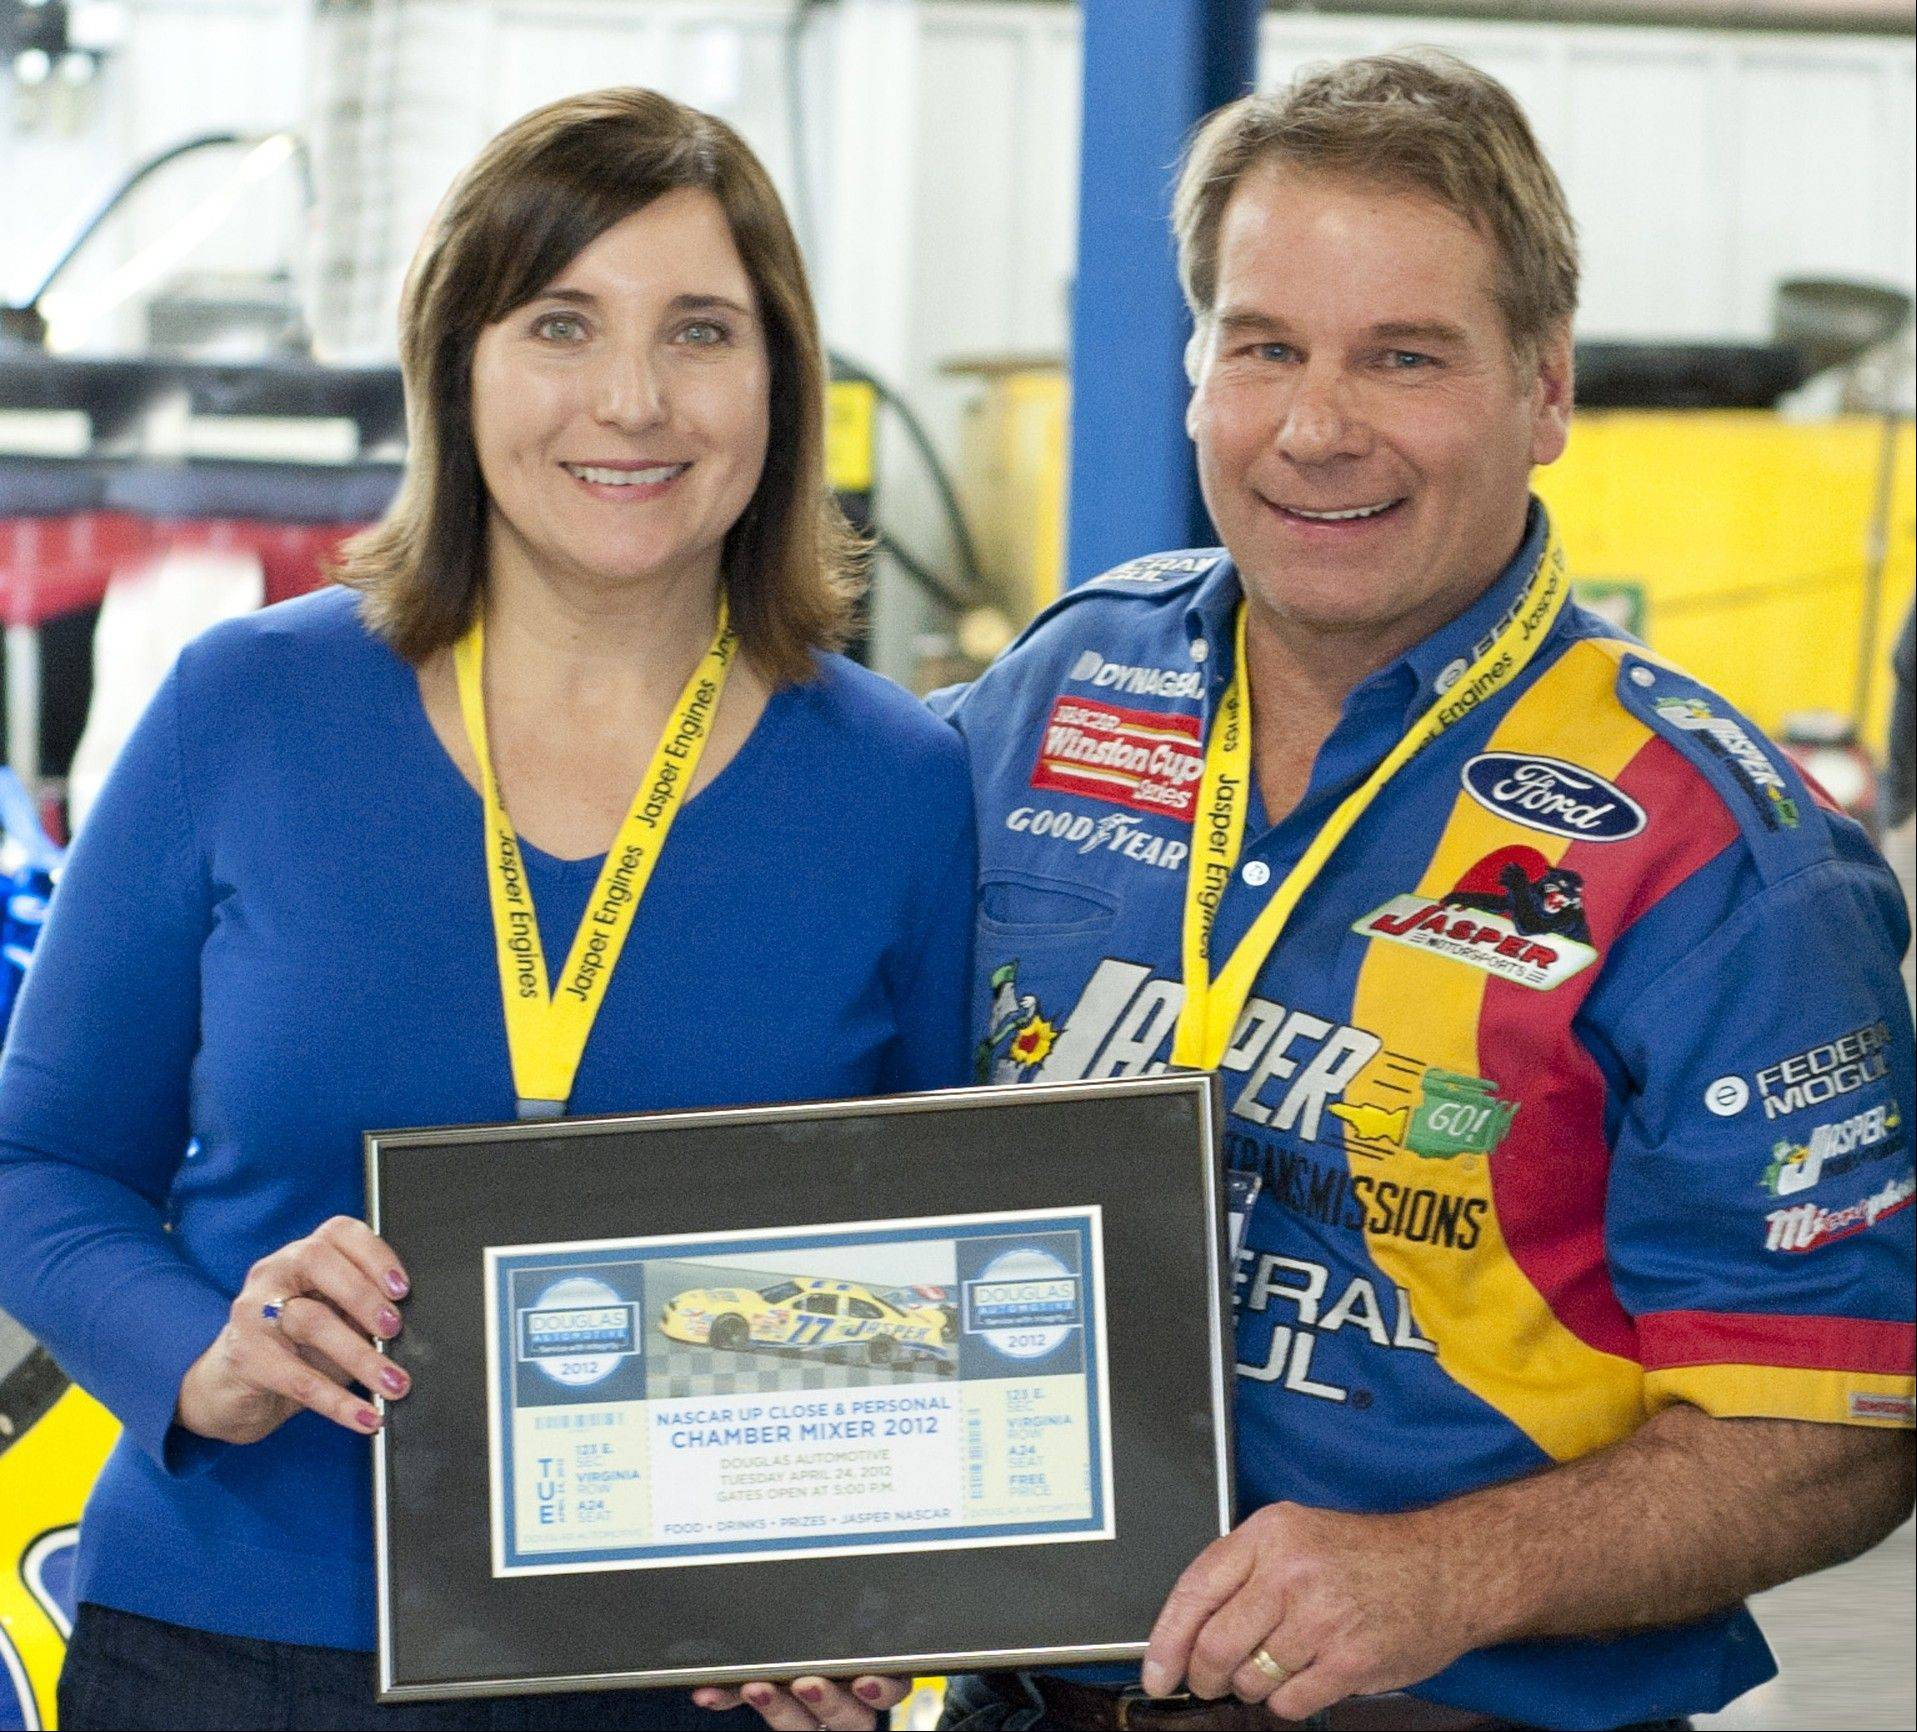 Doug and Janet McAllister, owners of Douglas Automotive, recently expanded their business in Barrington.